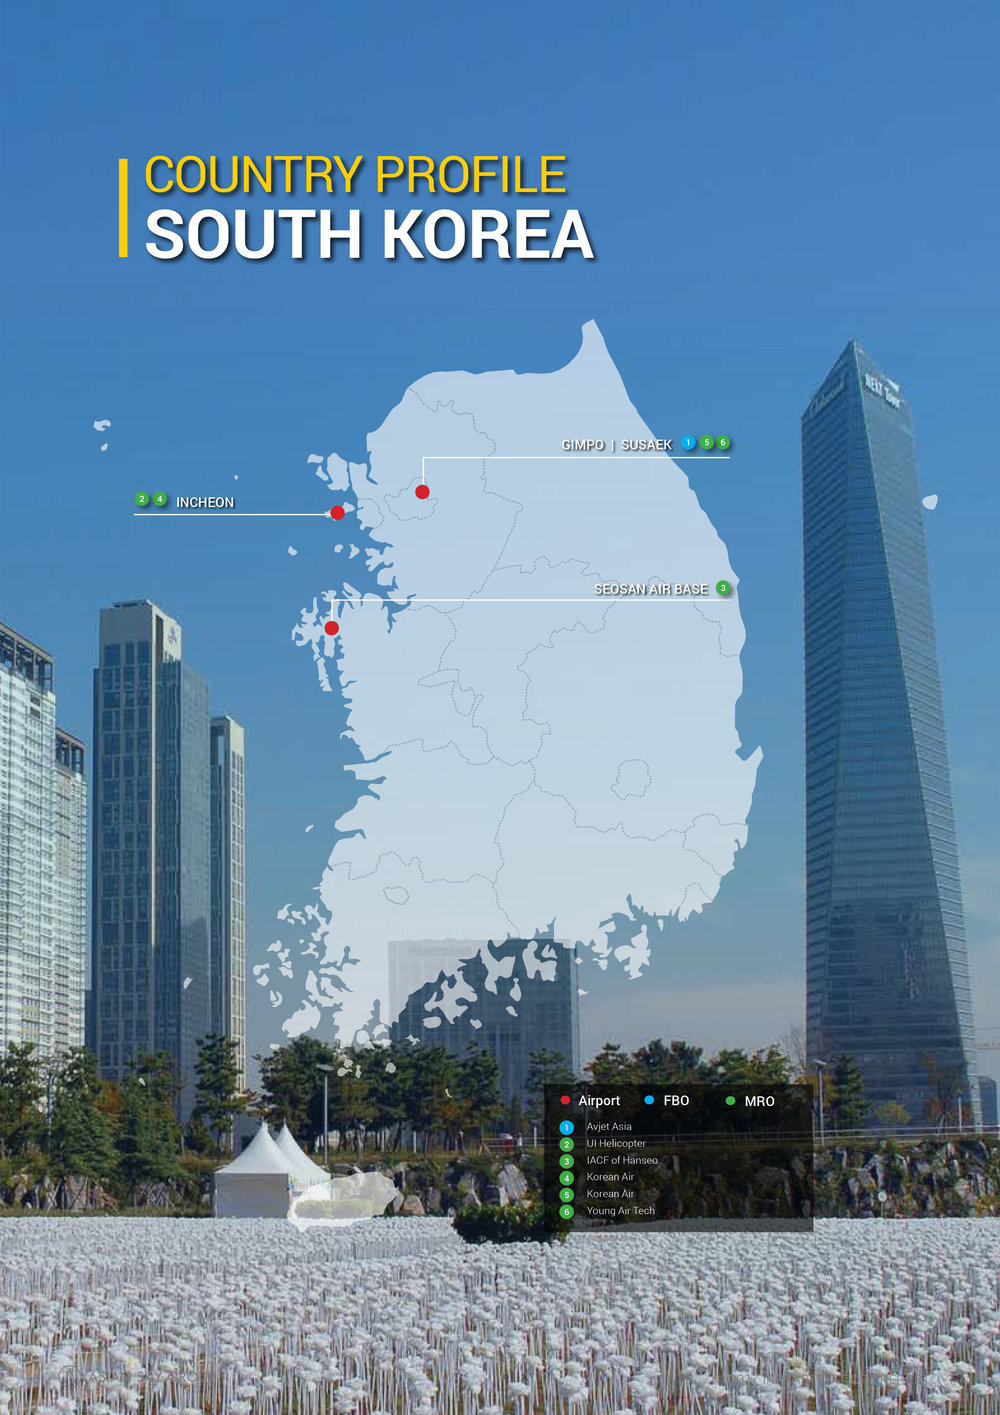 IR-South Korea-1.jpg